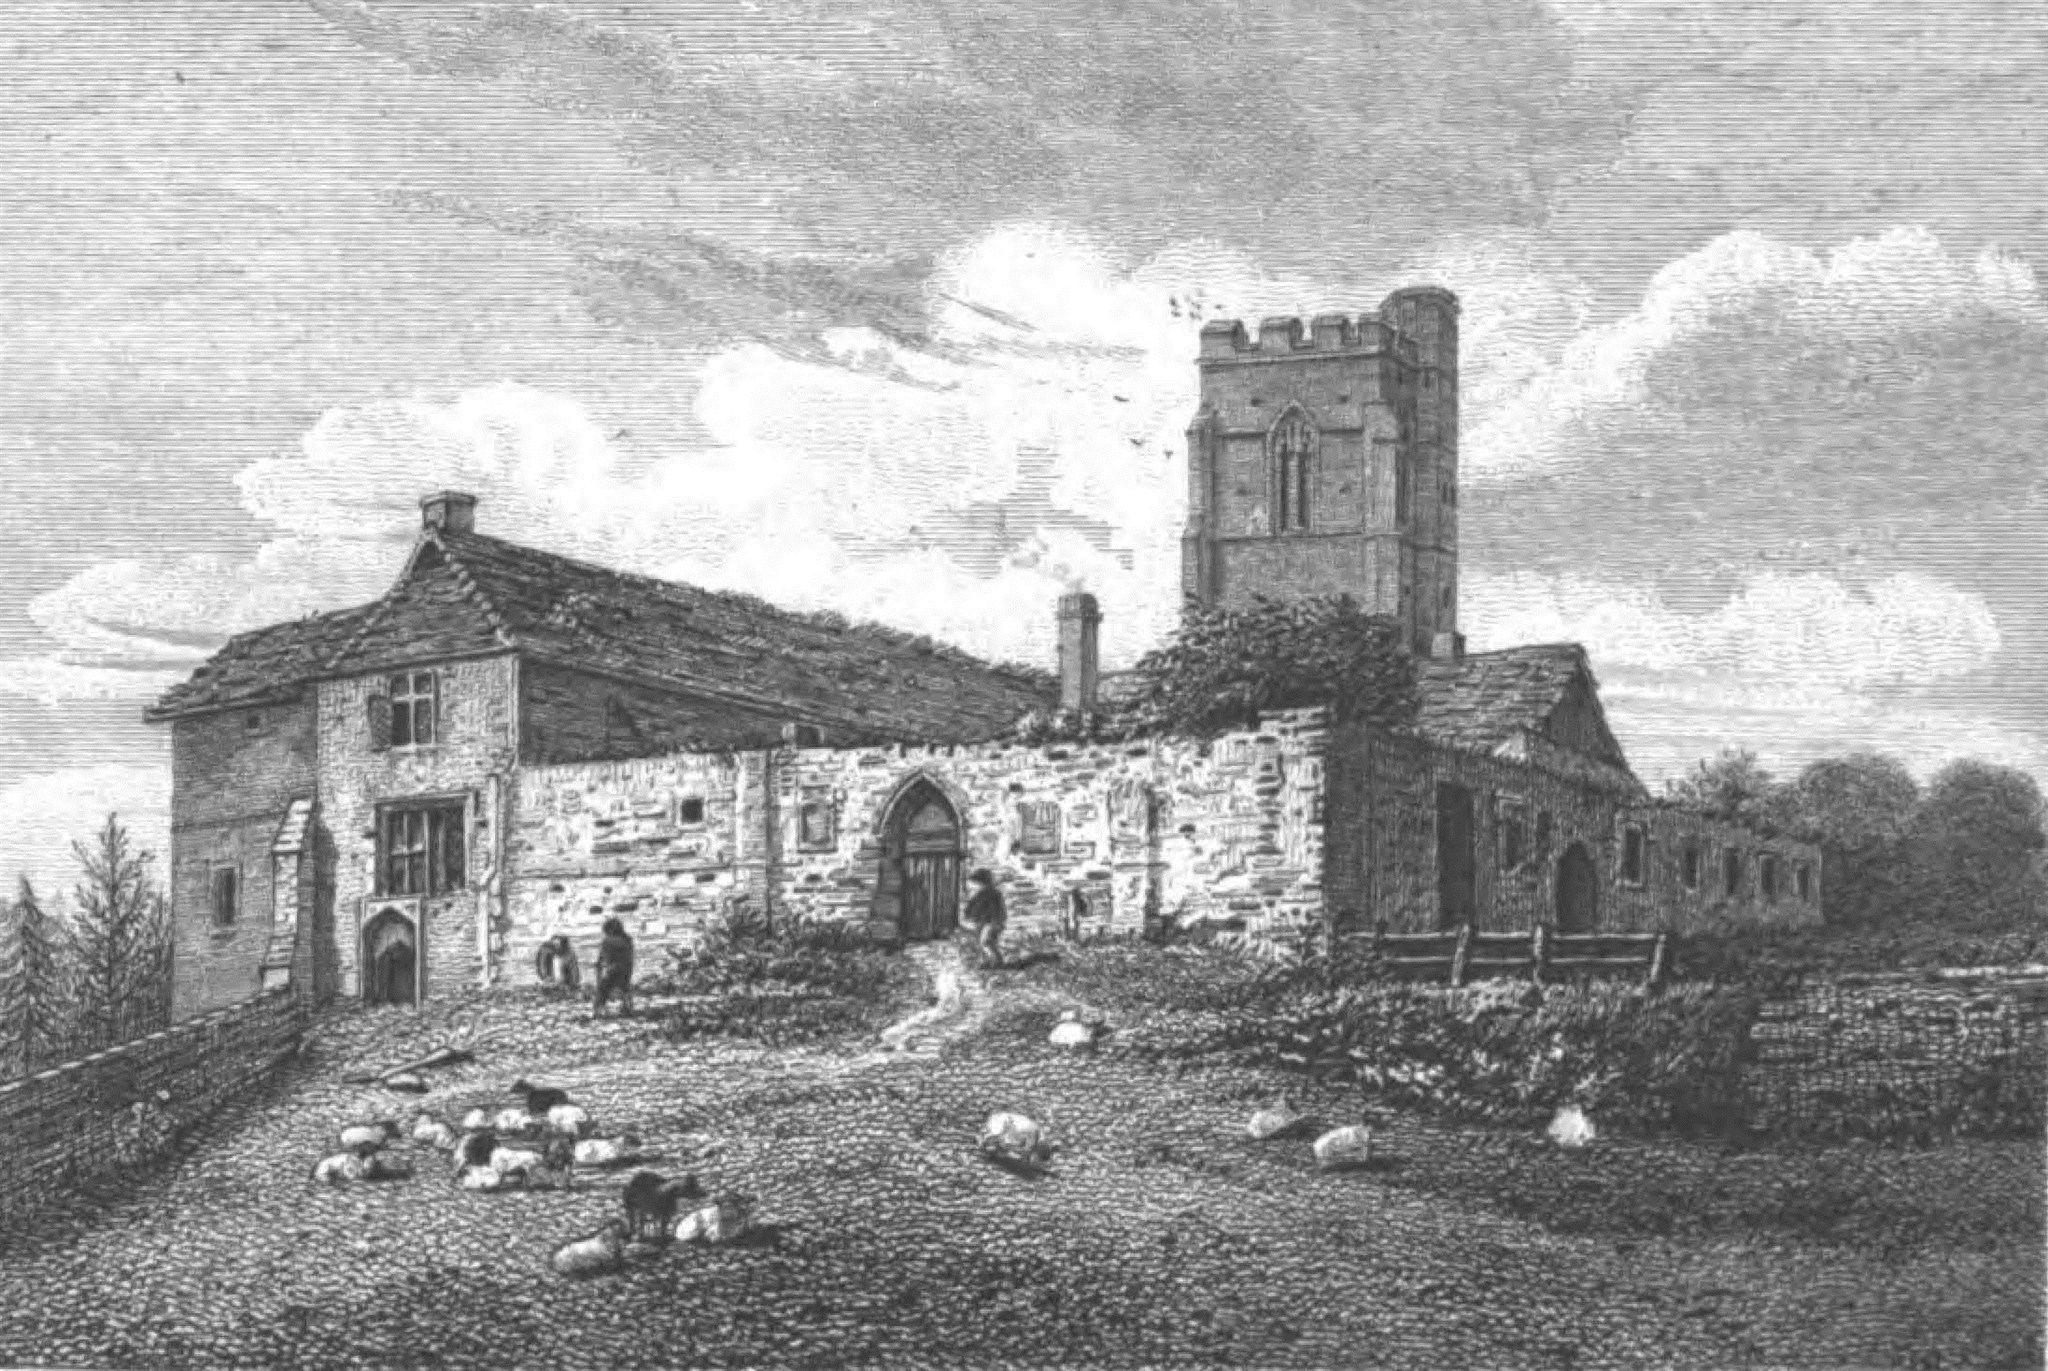 1818 print of the remains of the medieval St Gregory's College, Sudbury, Suffolk